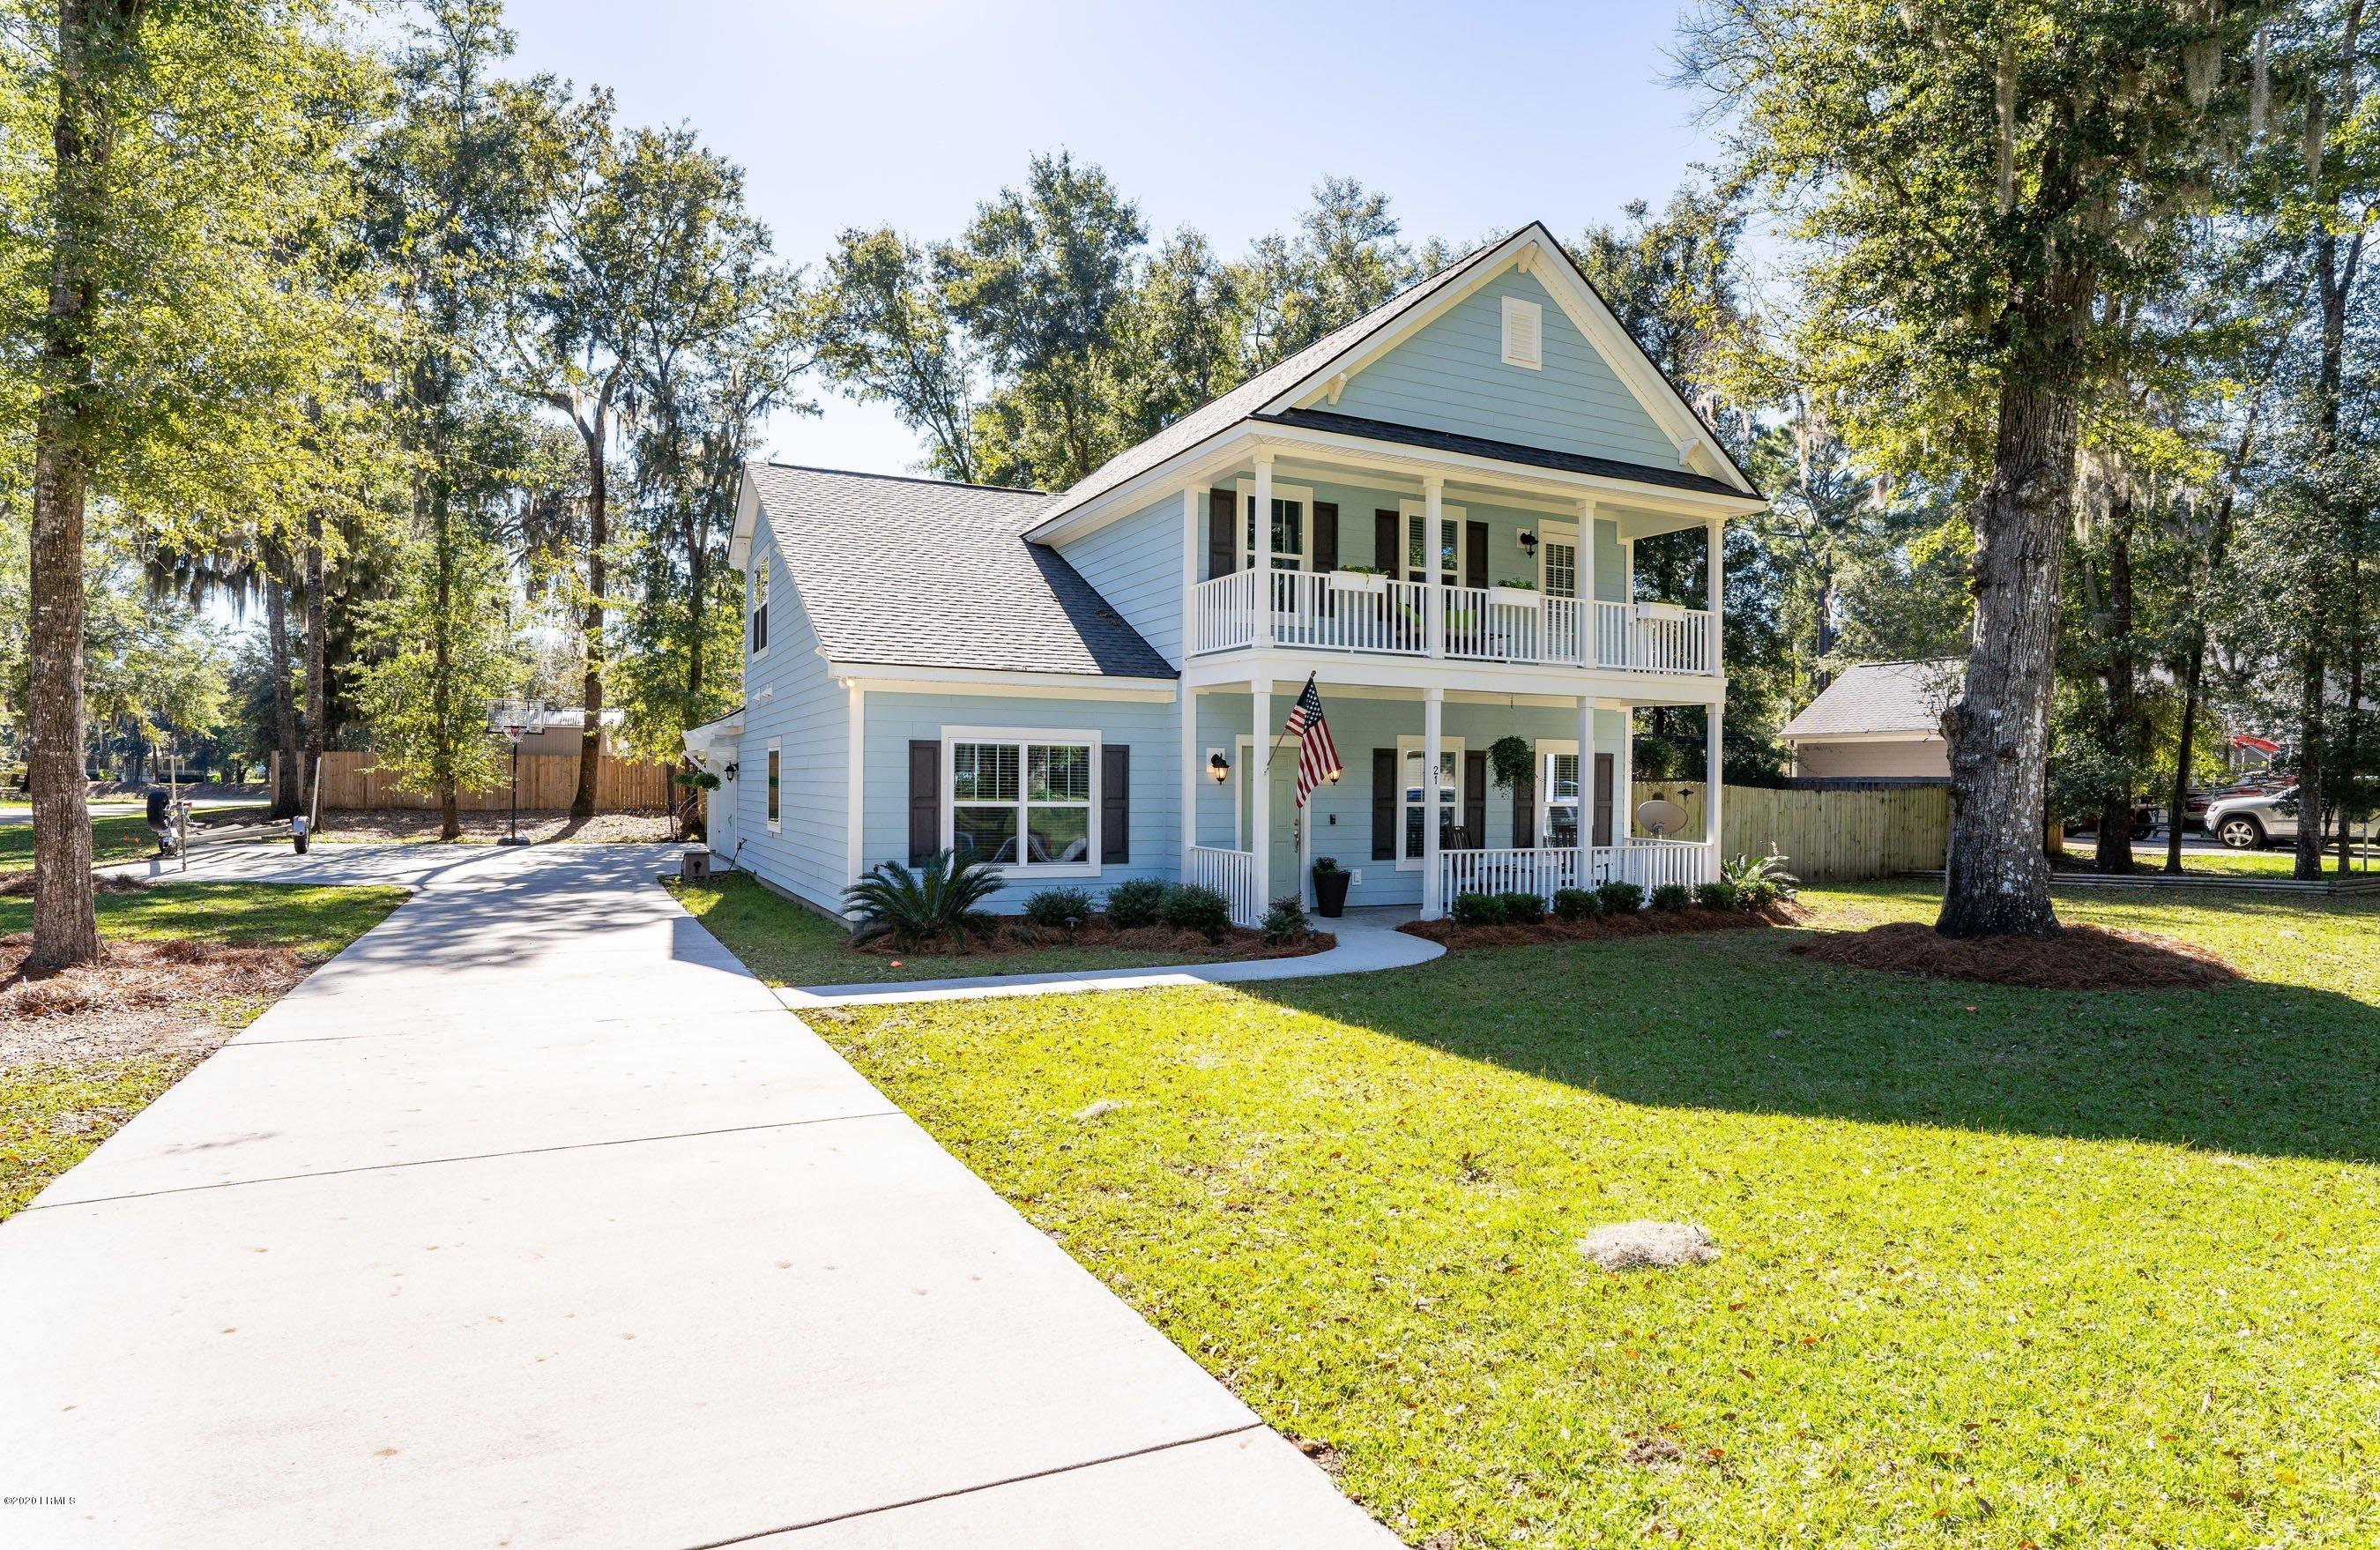 Photo of 21 Laughing Gull Drive, Beaufort, SC 29907